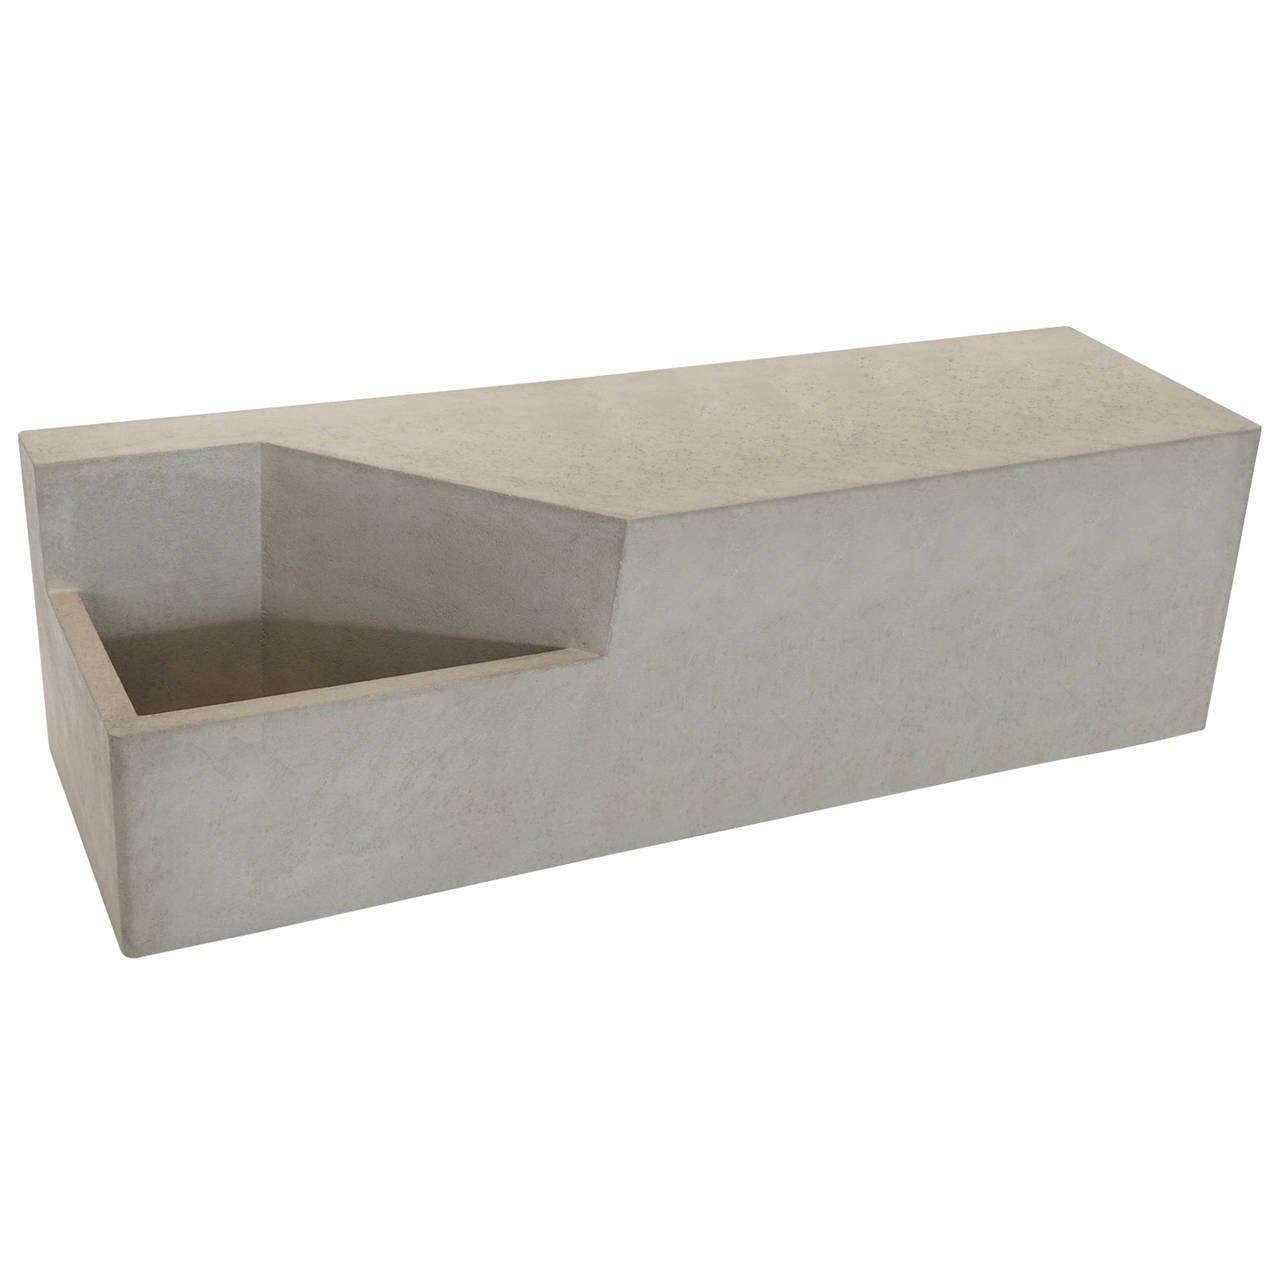 Scarpa Ii Cast Concrete Bench Or Planter For Sale At 1stdibs